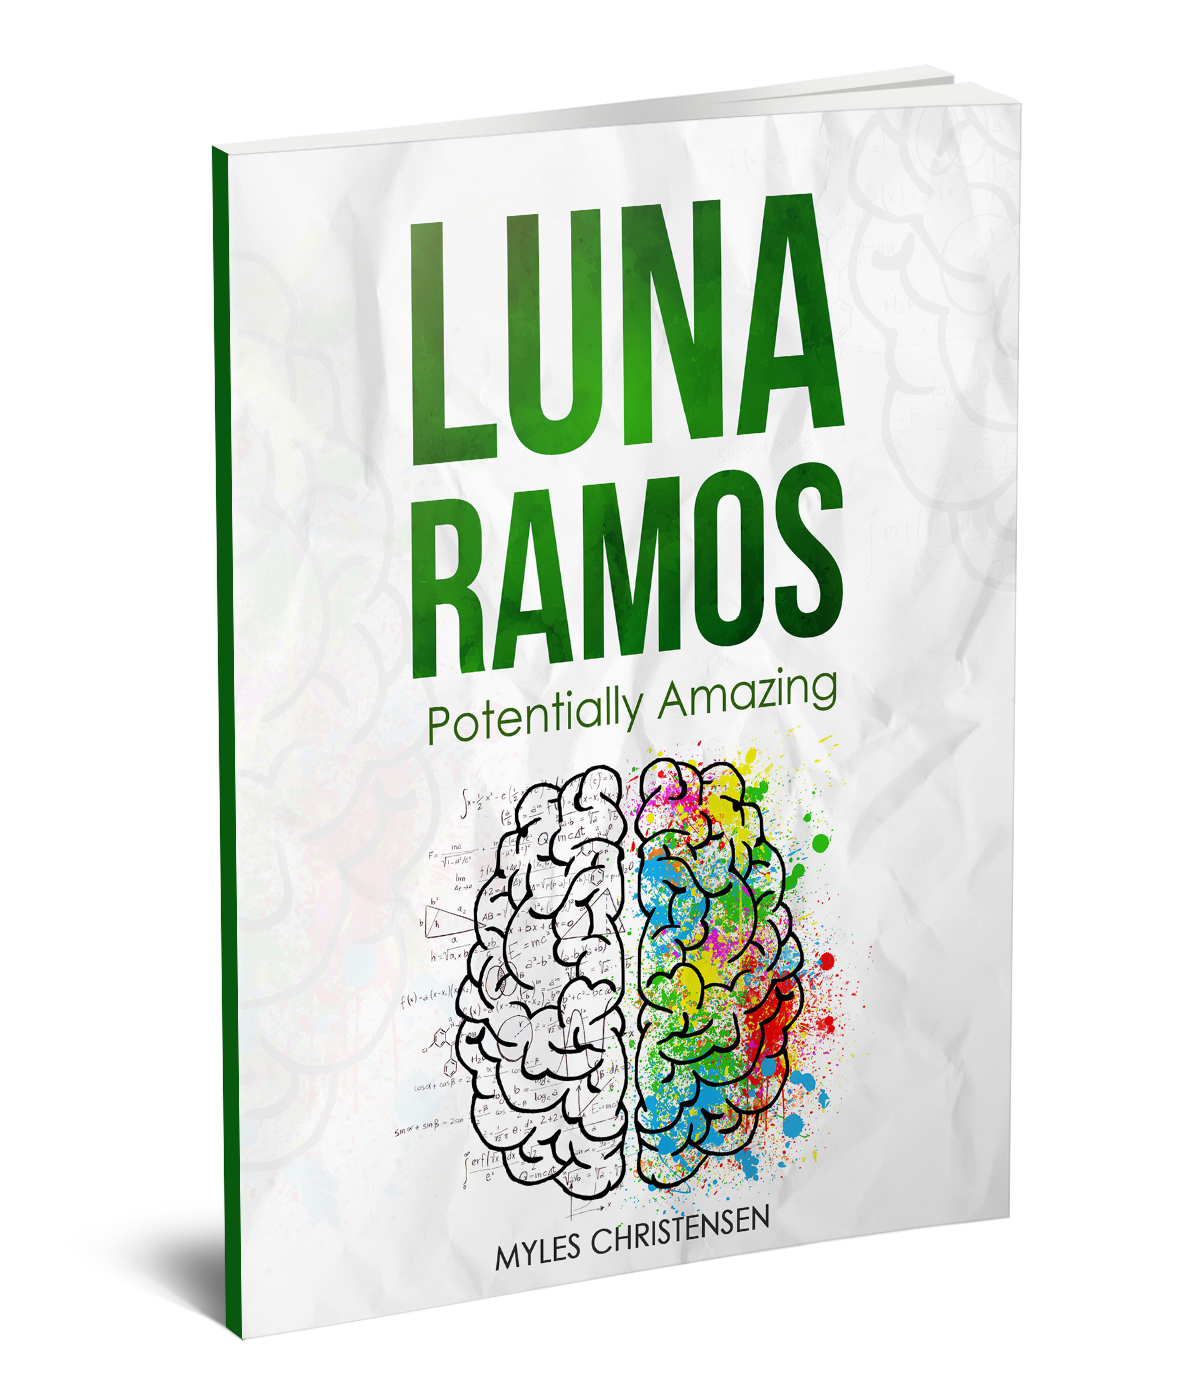 Texas Award - LUNA RAMOS: POTENTIALLY AMAZING by Myles ChristensenLuna and Arush work together to create an educational video about potential energy. However, making the video educational is only half the task: they need to make learning magical.